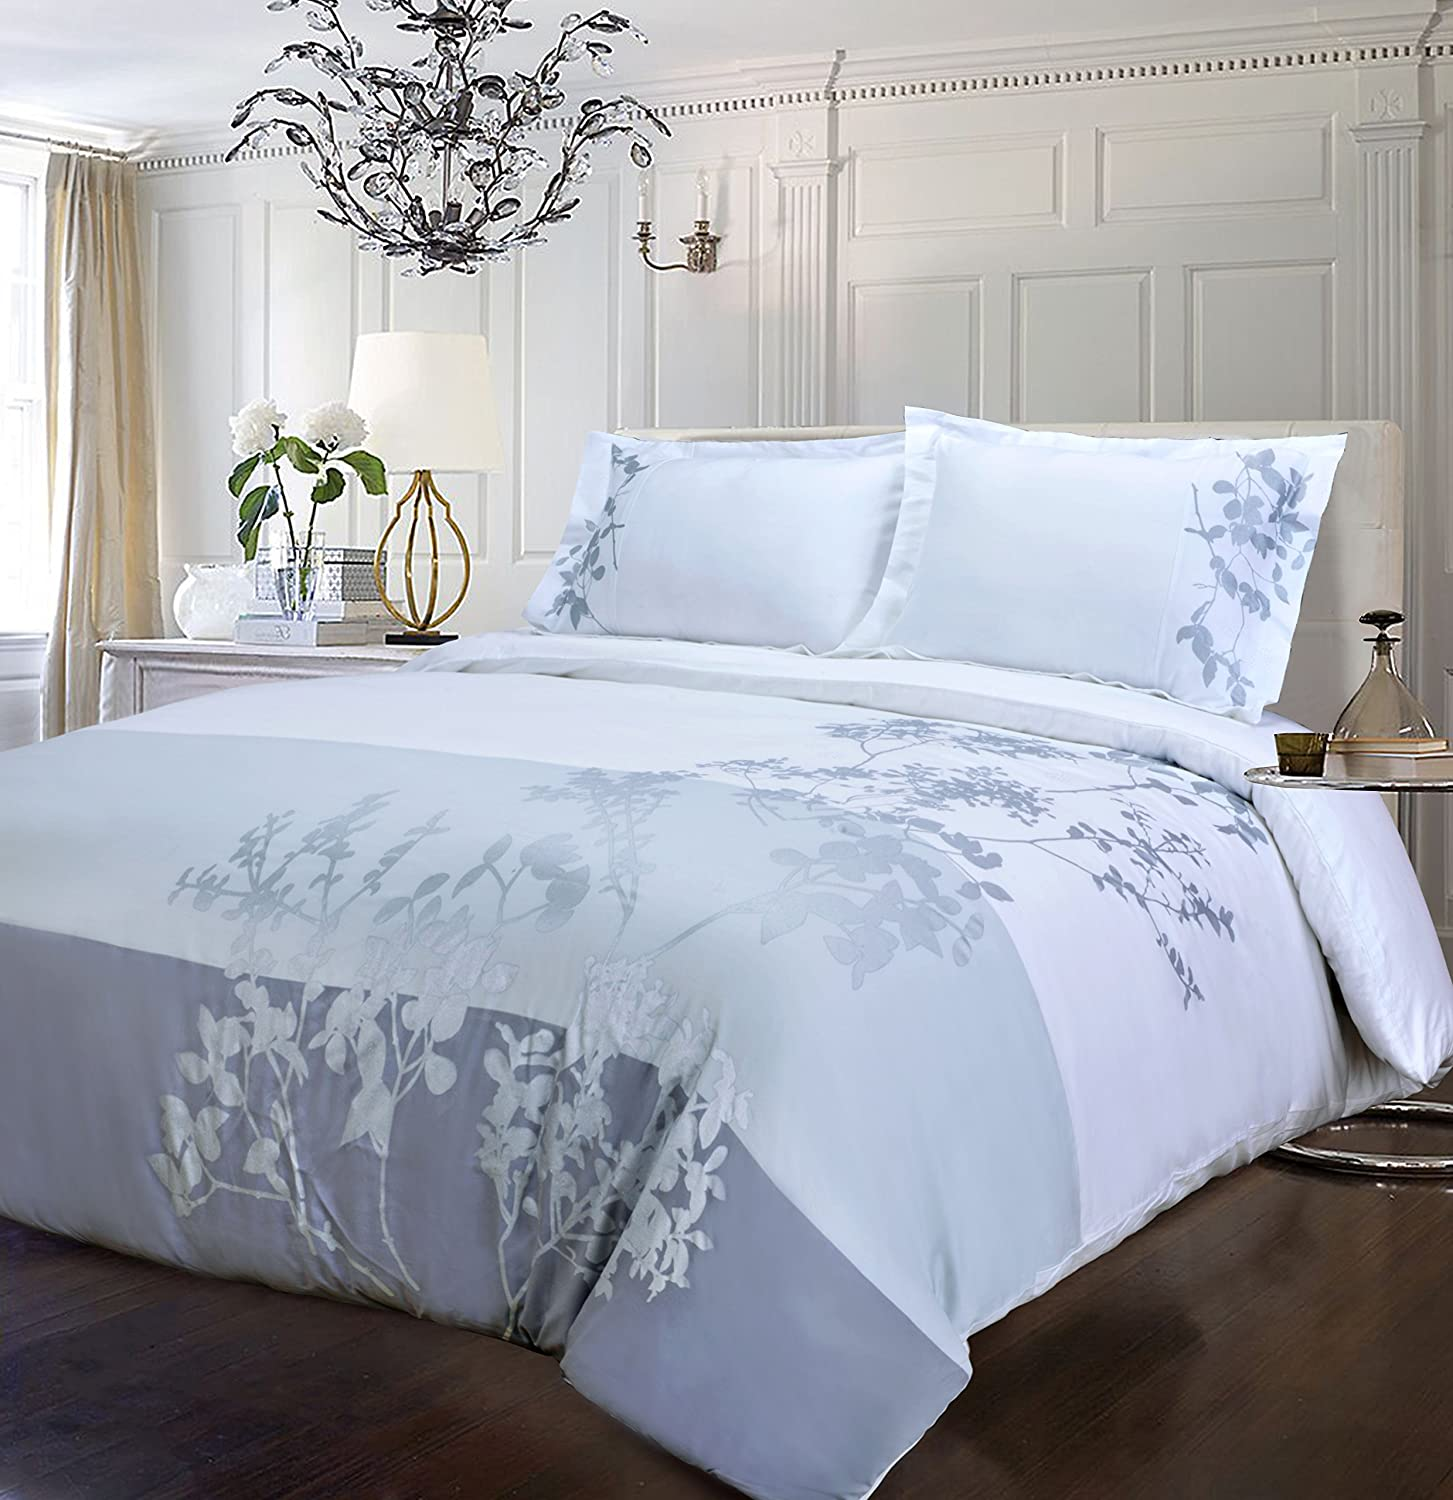 cal king duvet cover Amazon.com: Superior 100% Cotton Sydney Single Ply, Soft 3 Piece  cal king duvet cover